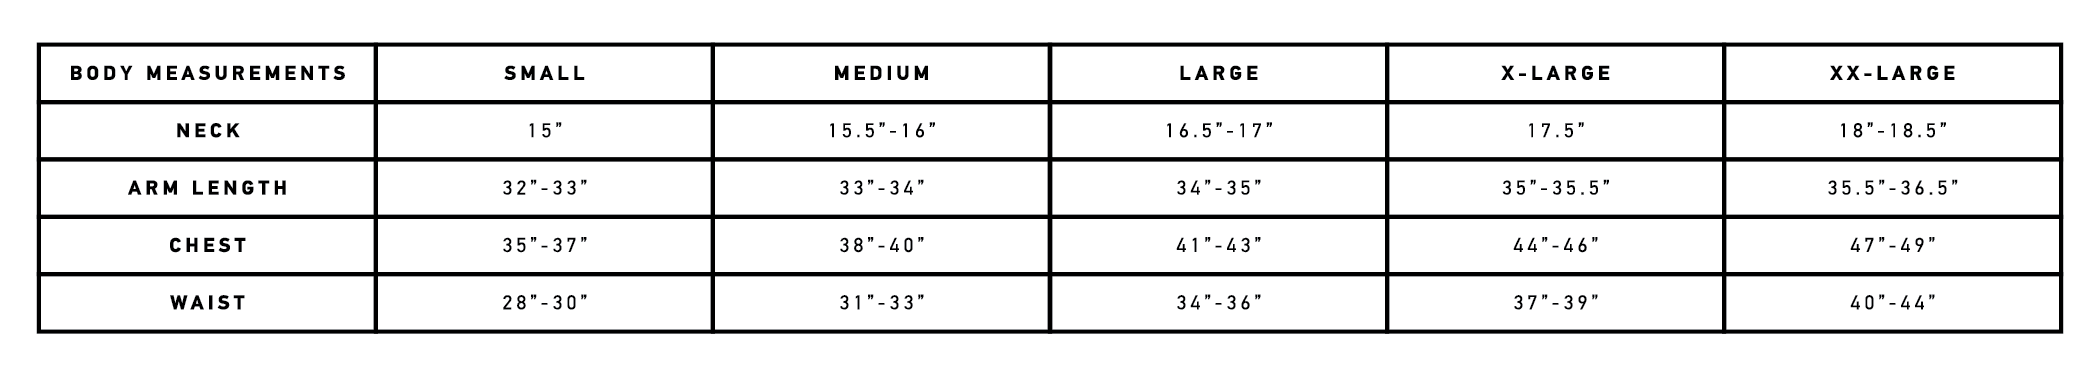 Commuter shirt sizing chart